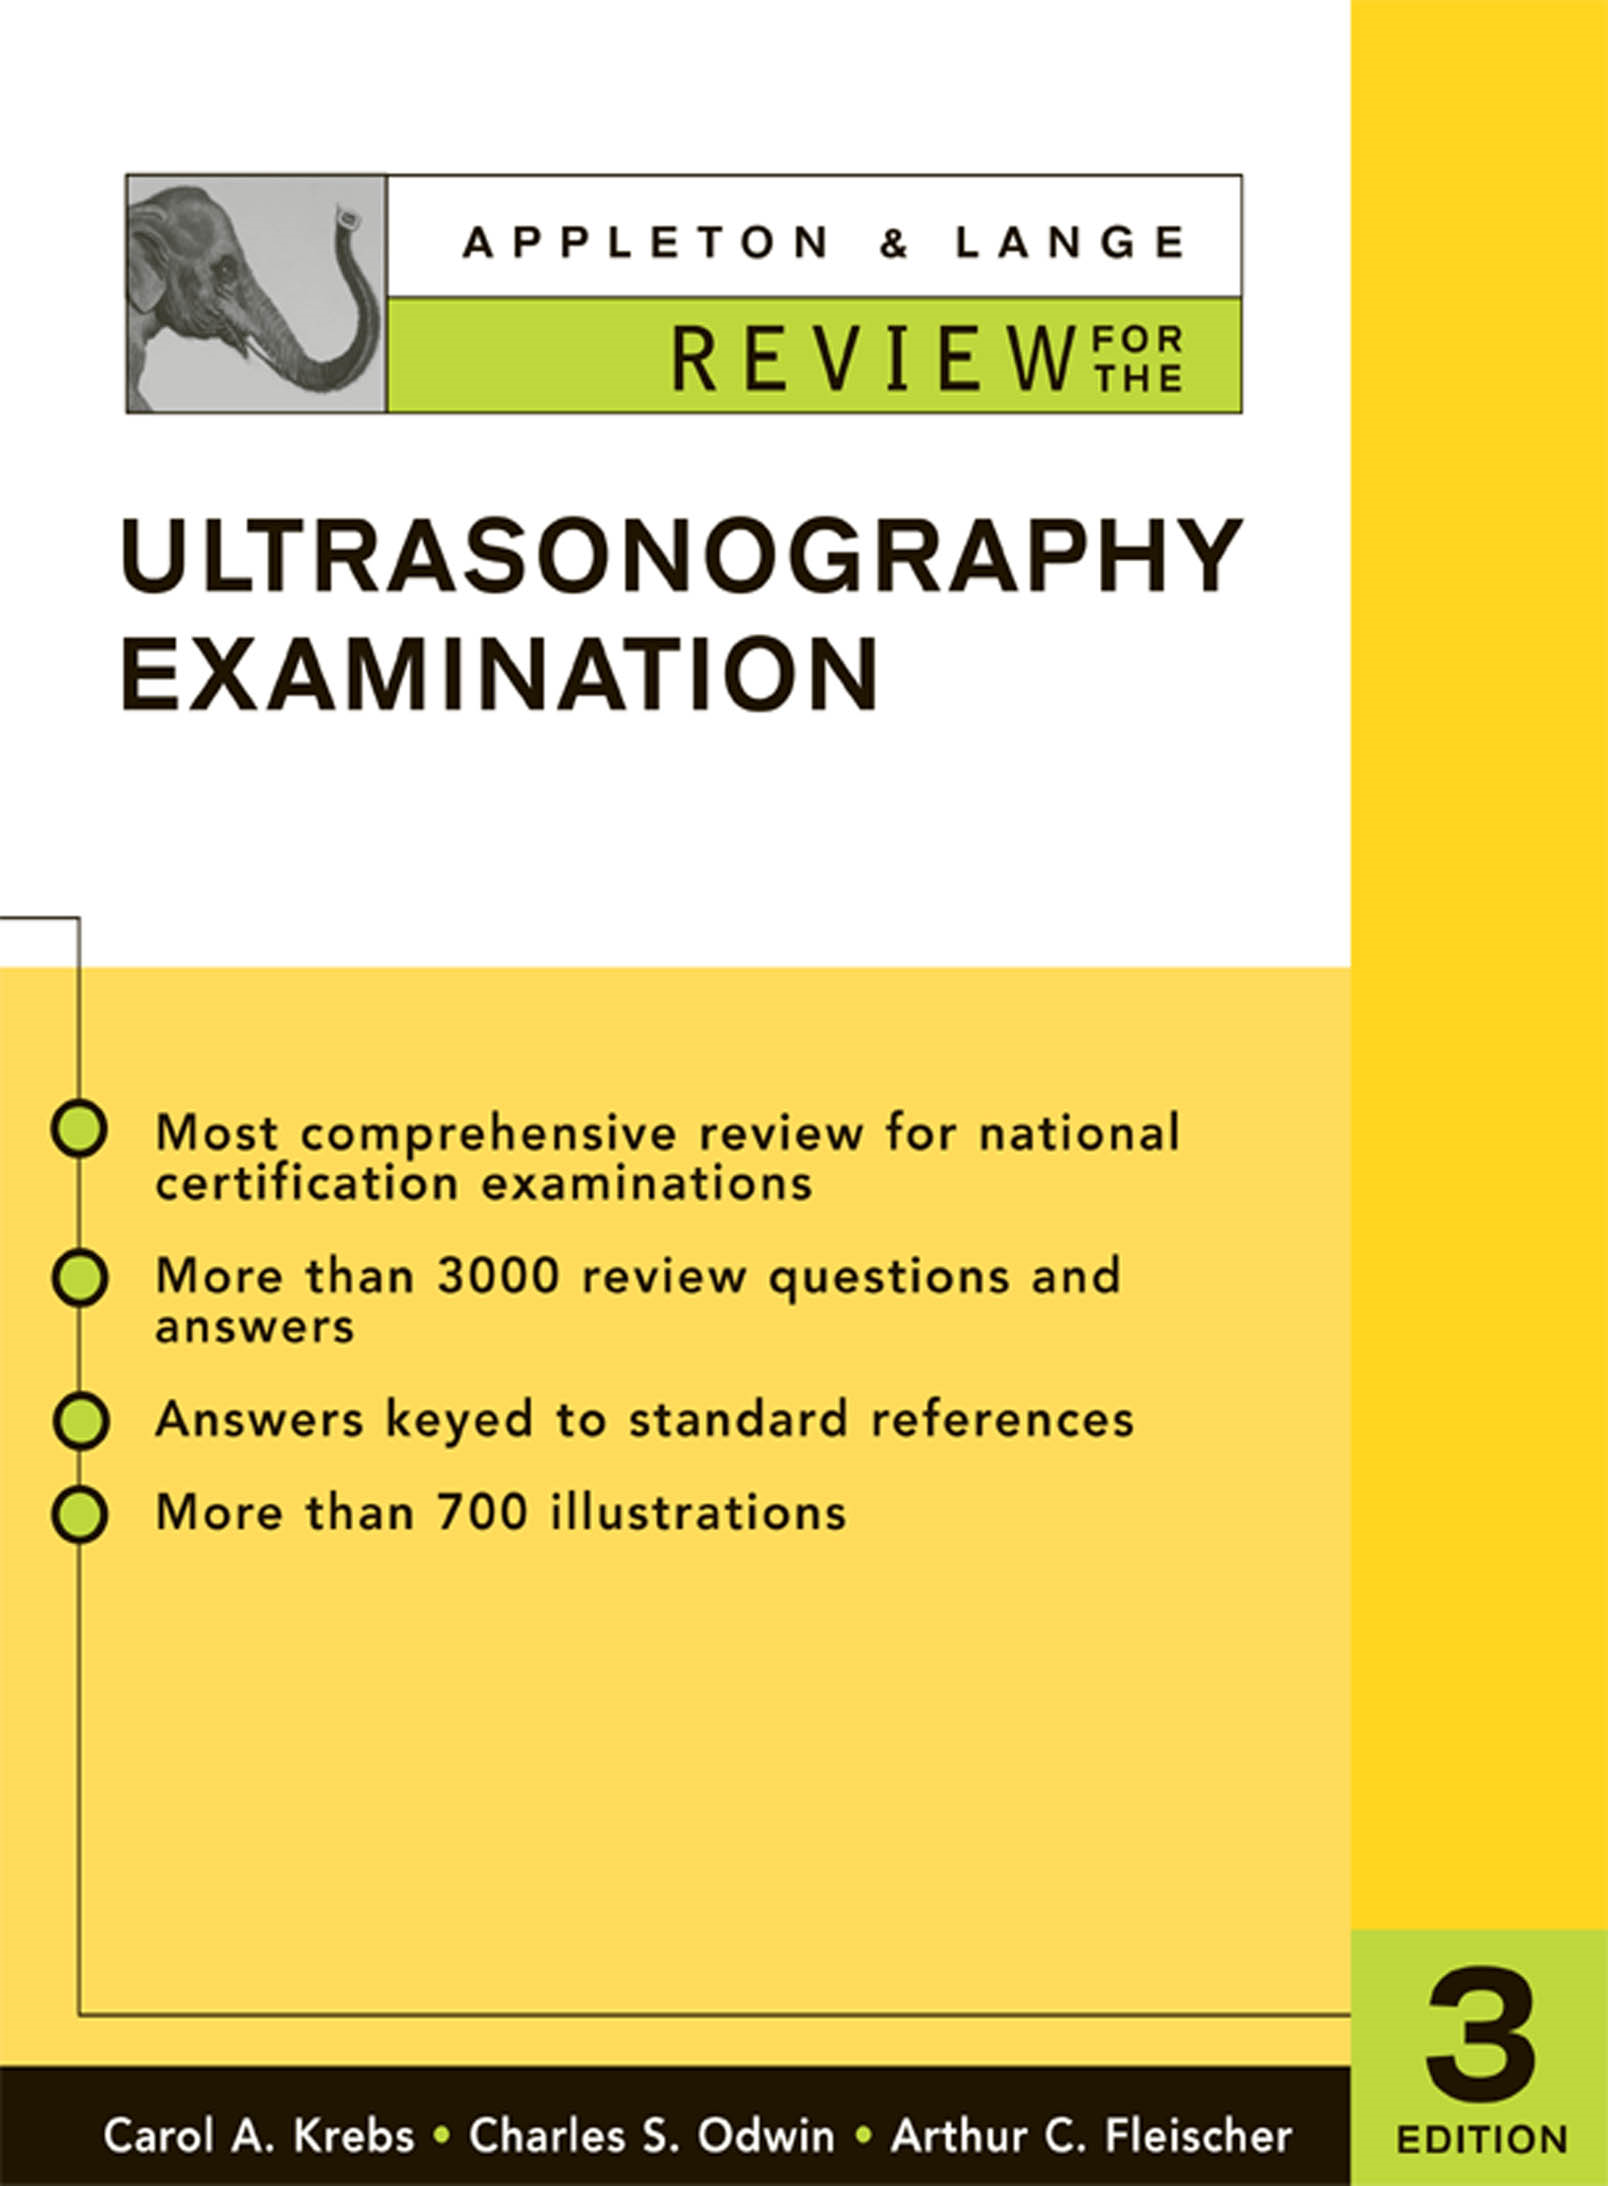 Appleton & Lange Review for the Ultrasonography Examination: Third Edition